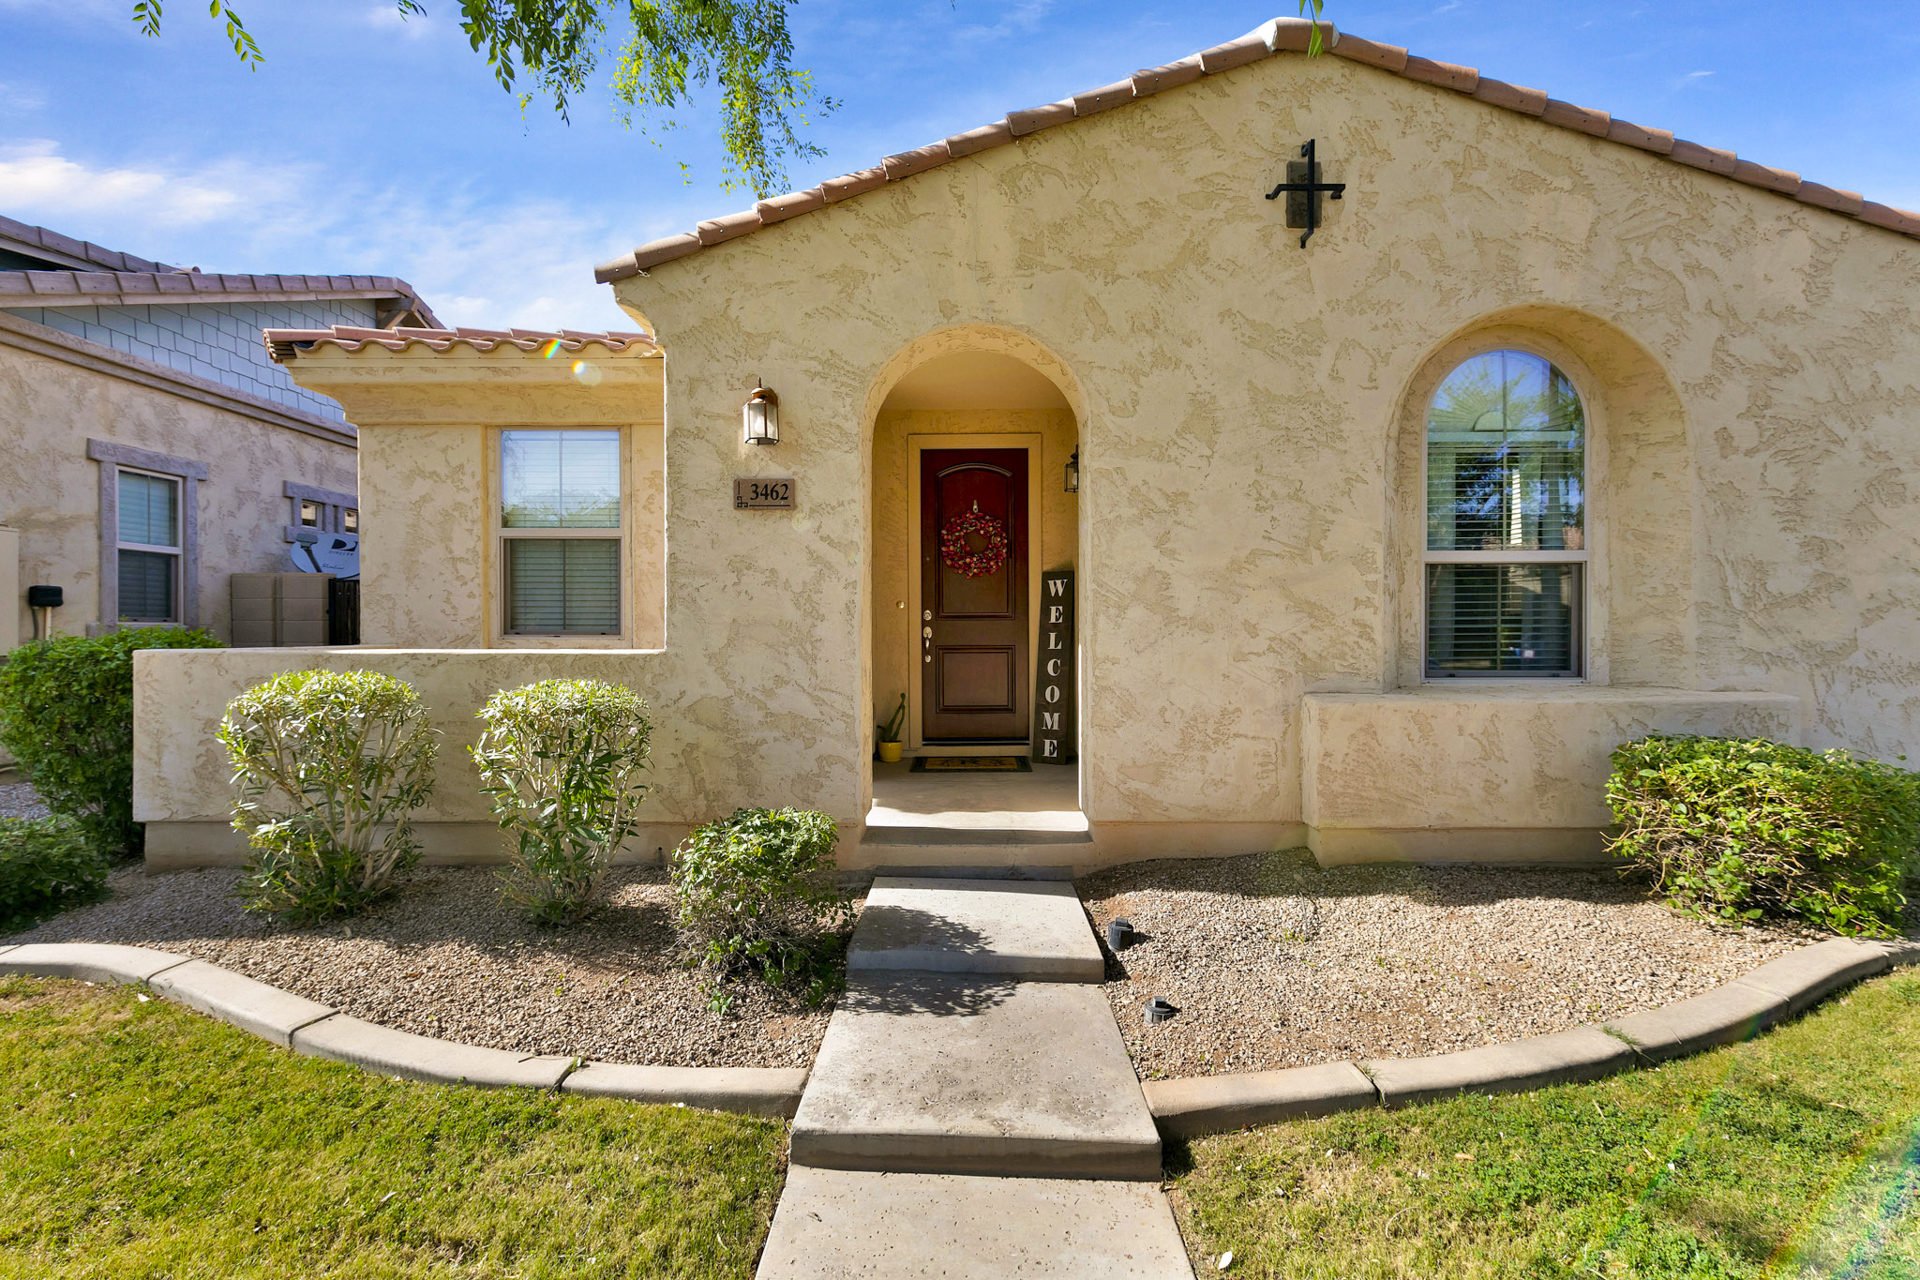 Coming Soon! 3462 E Betsy Lane, Gilbert, AZ 85296 - Higley Park | Amy Jones Group